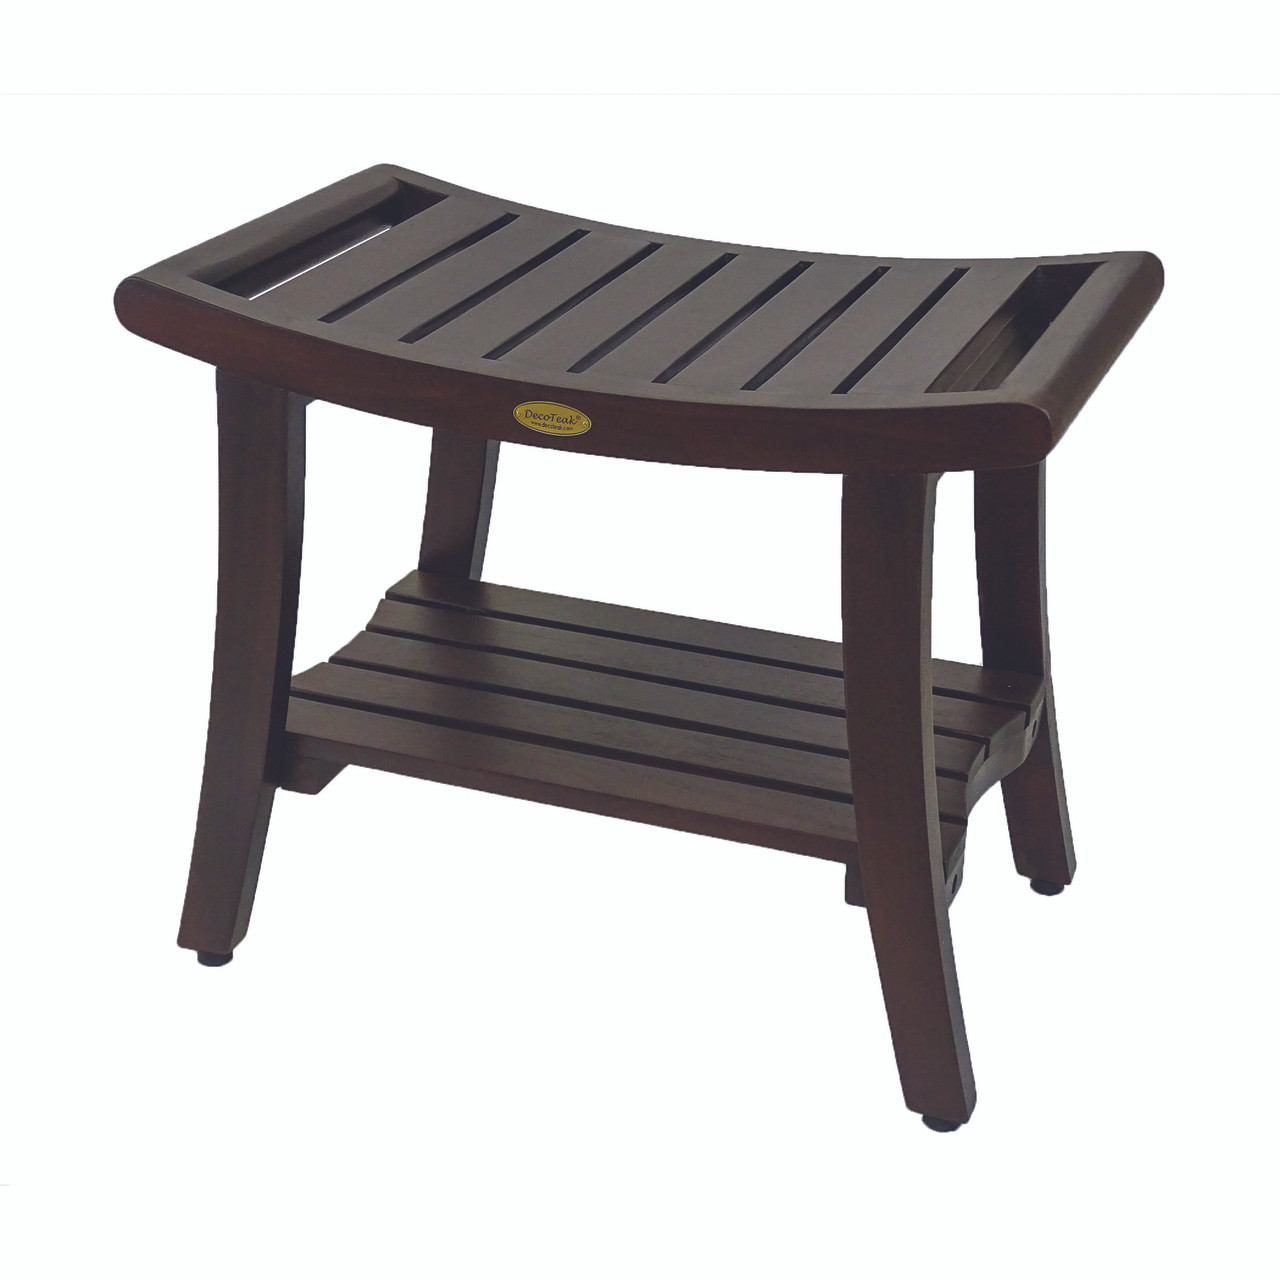 Picture of: Decoteak Harmony 24 Inch Teak Shower Bench With Shelf And Liftaide Arms